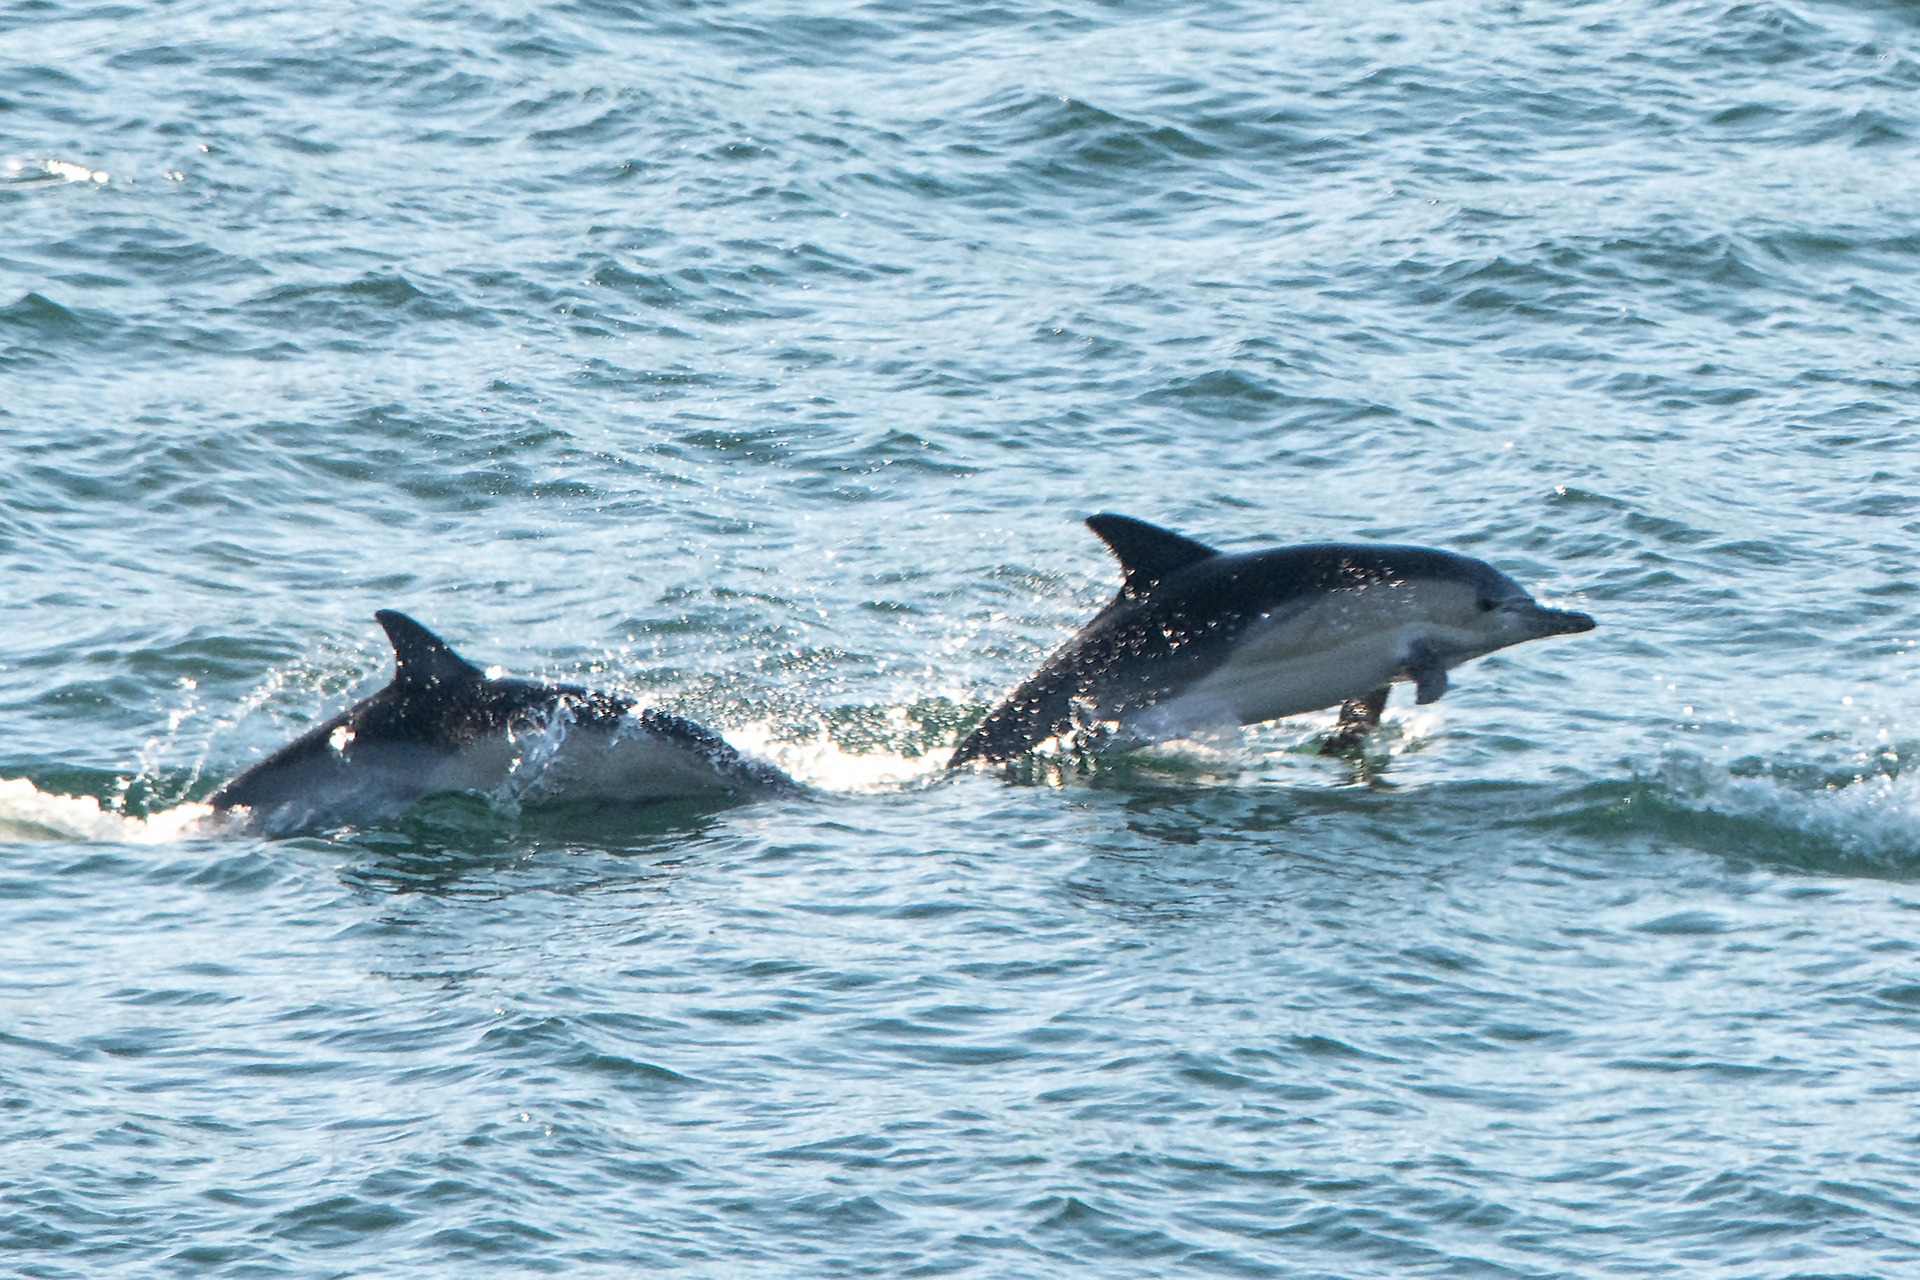 Anger after jetskiiers chase dolphin pod in Wellington waters